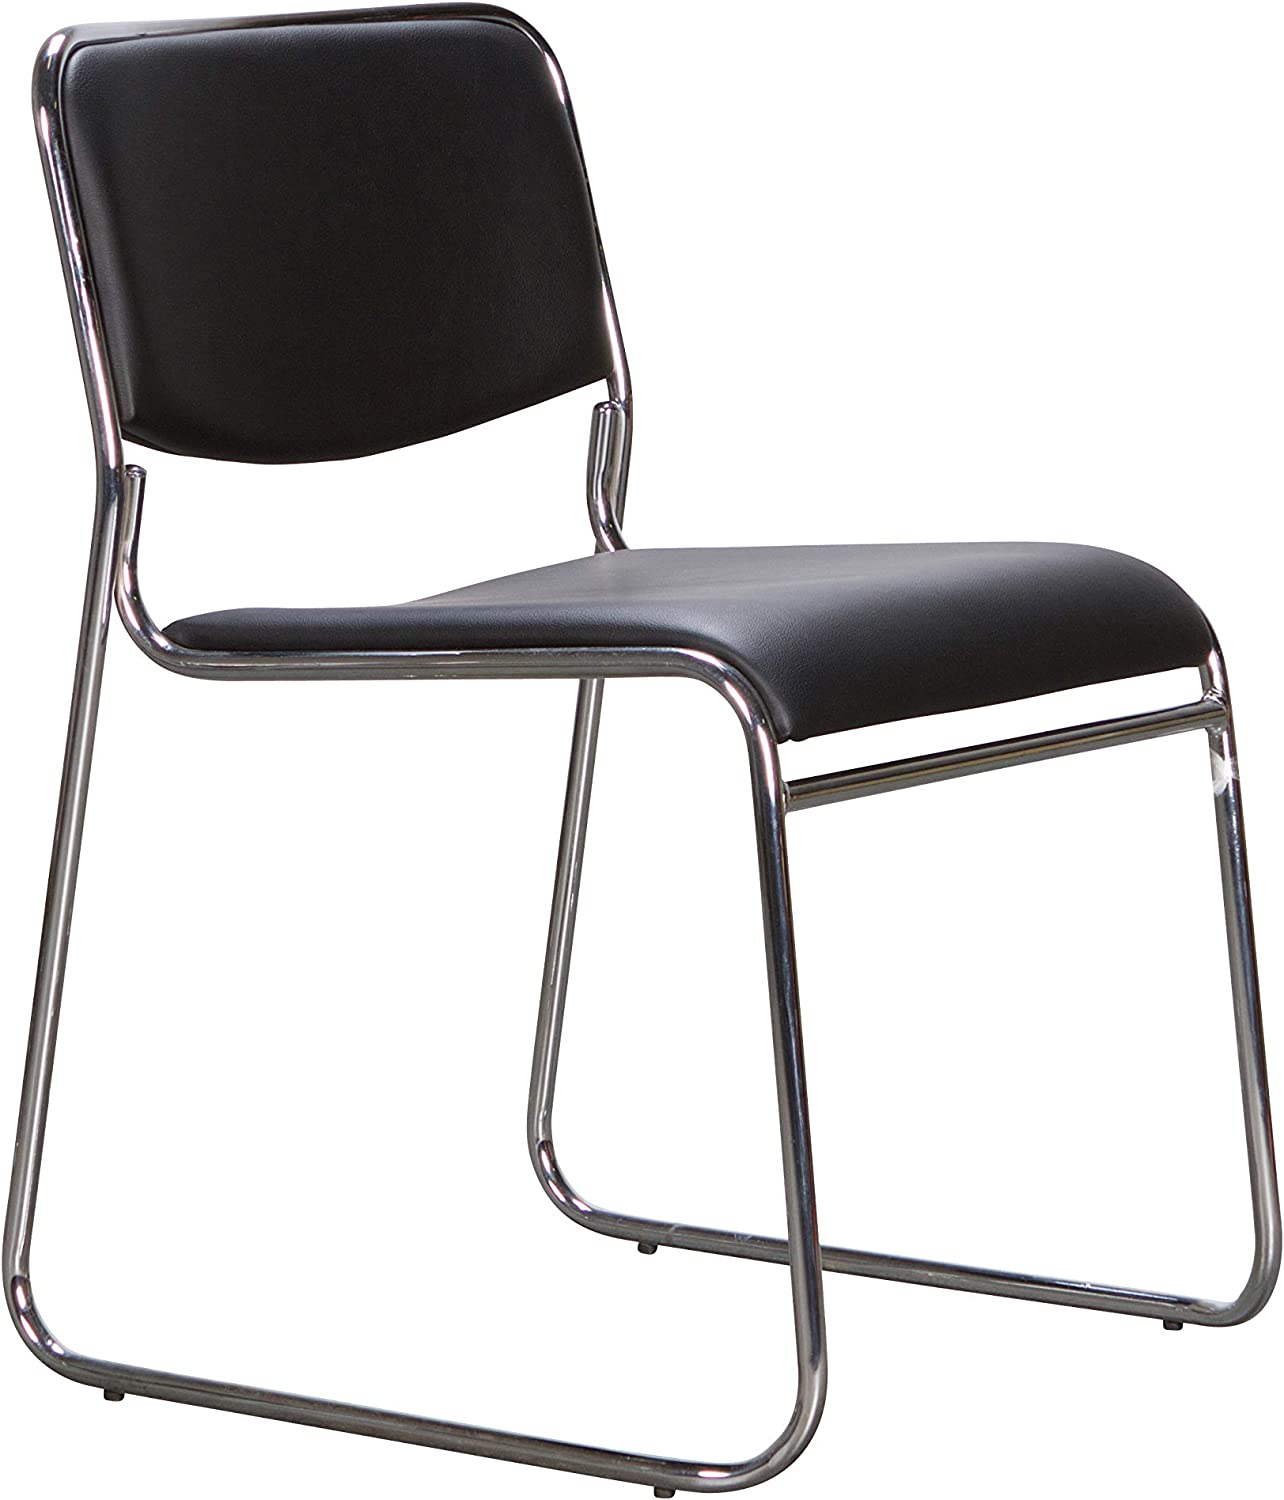 Linon Home Decor Products Linon Black Upholstered Back and Seat (Set of 2) Chase Metal Modern Dining Chair